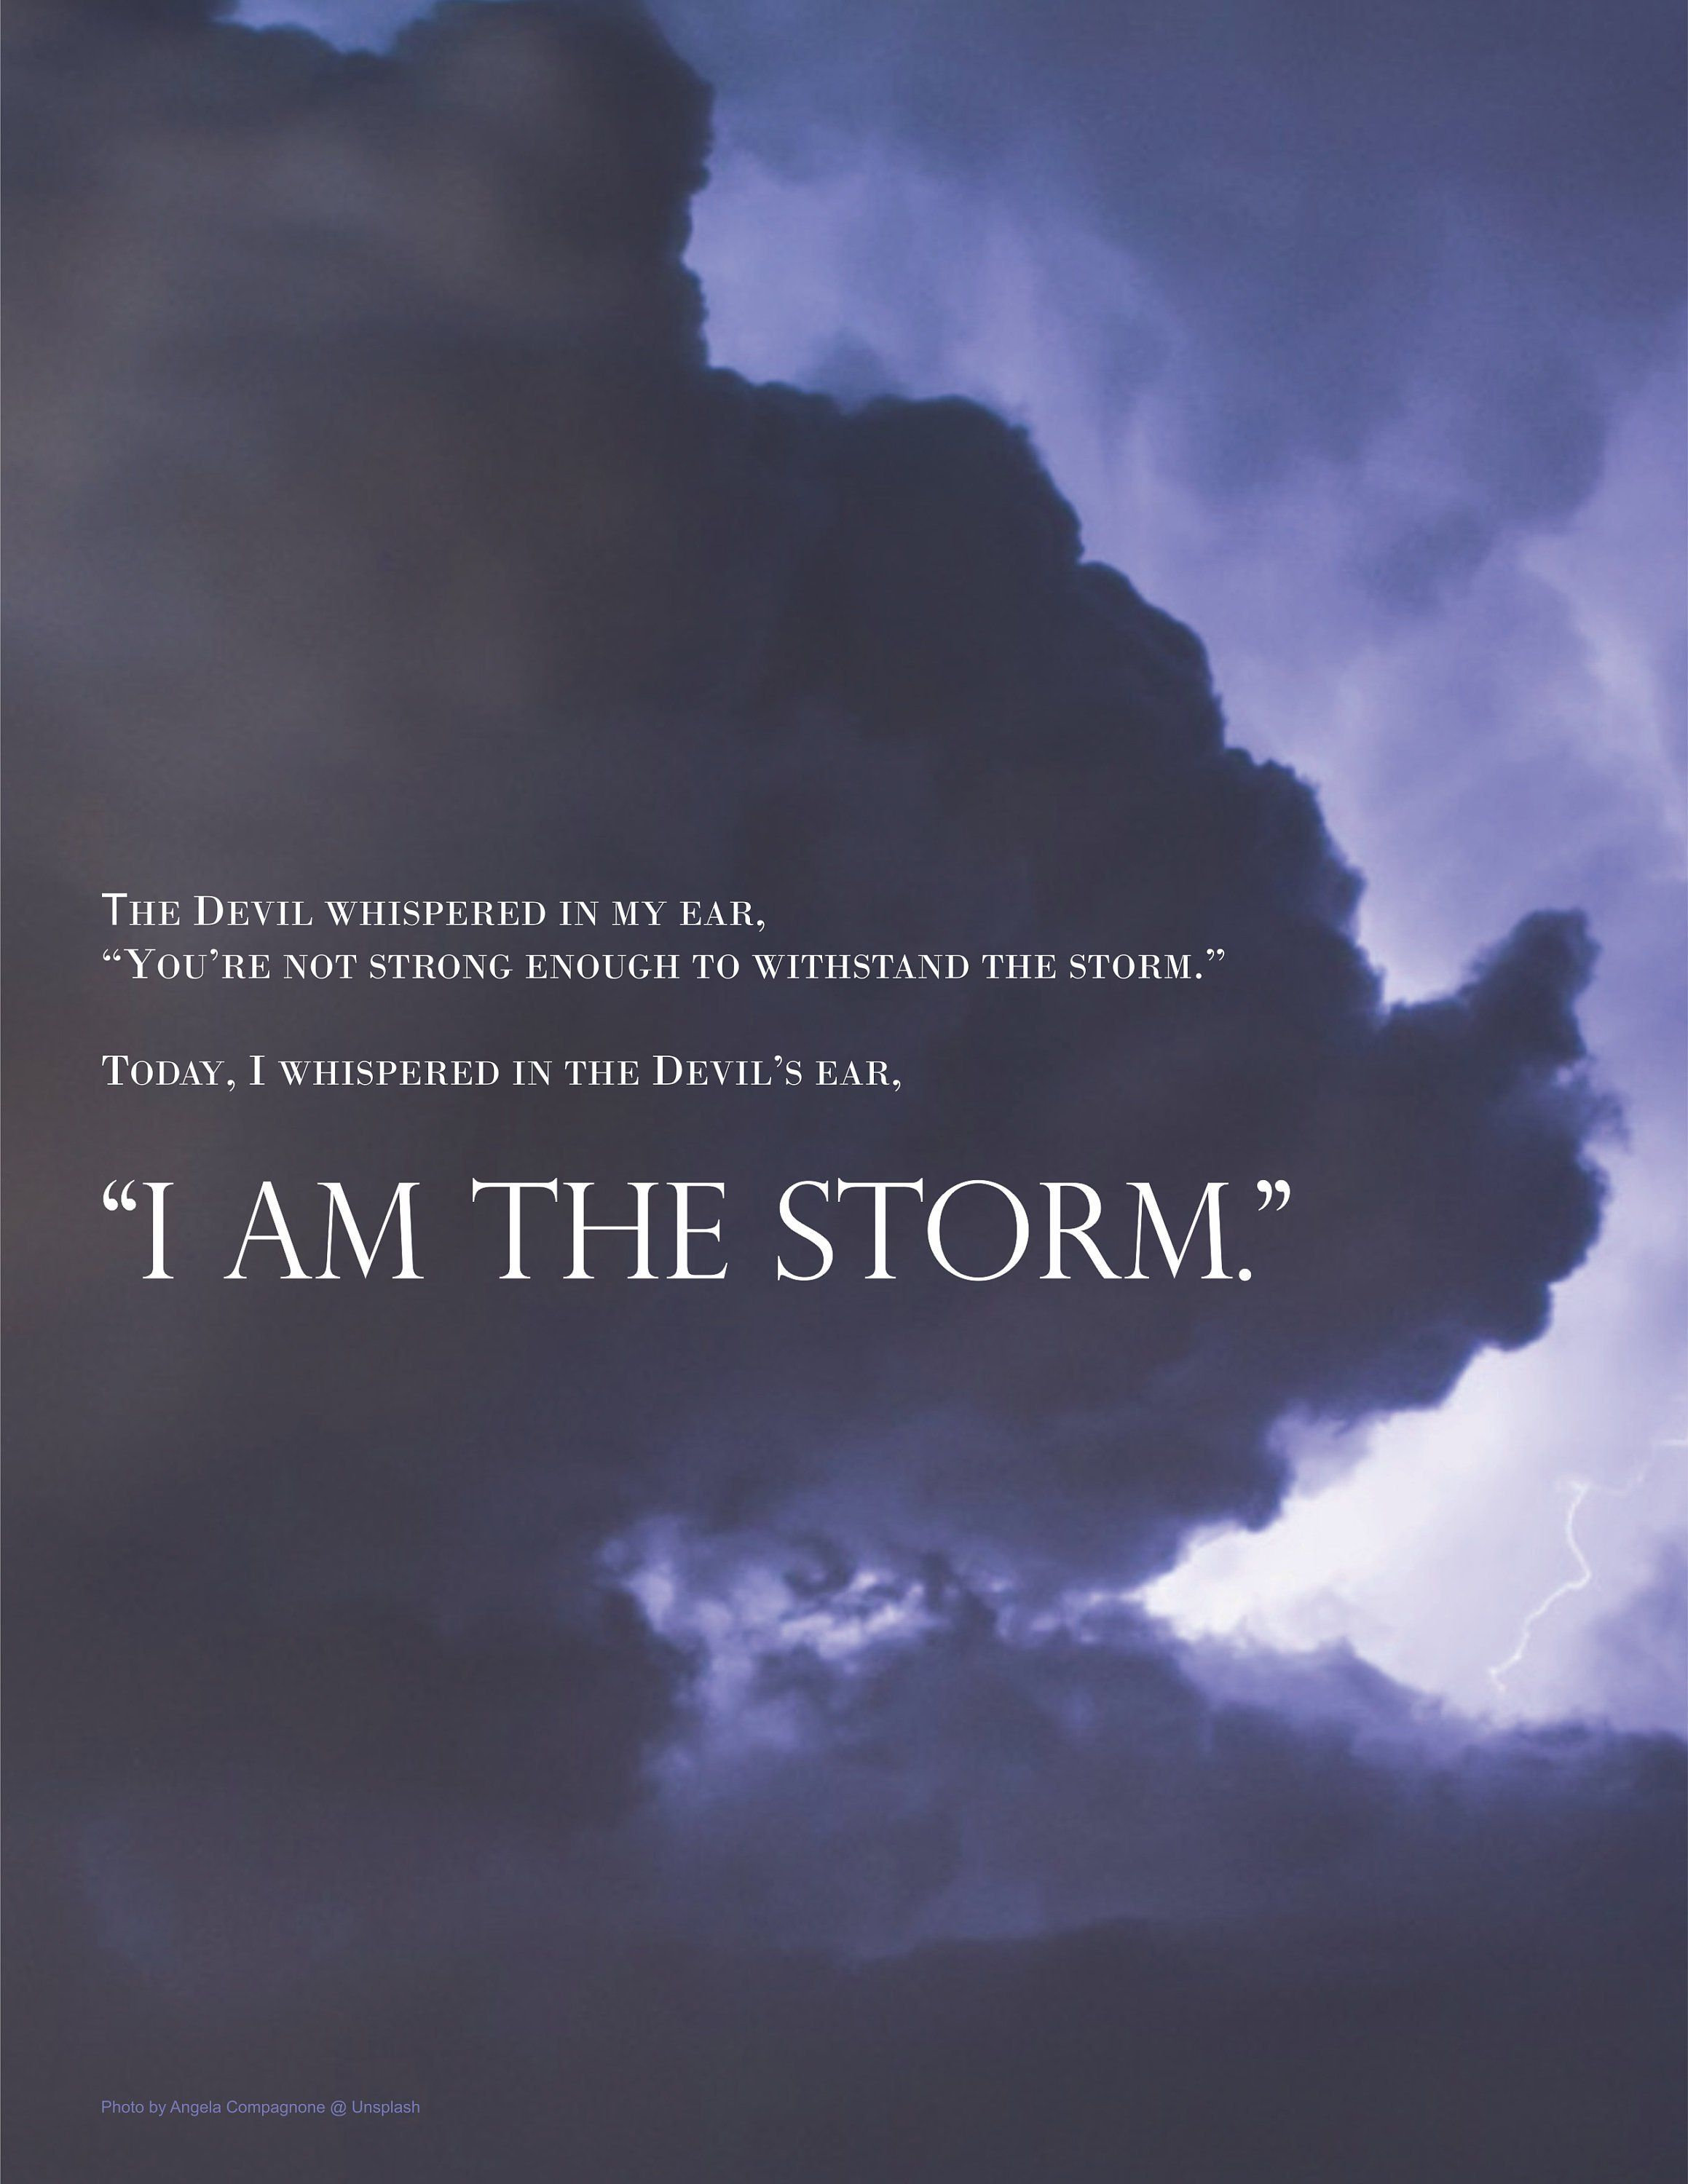 i am the storm printable etsy quotes, life sample resume for teenager with little work experience free academic template word skills law enforcement